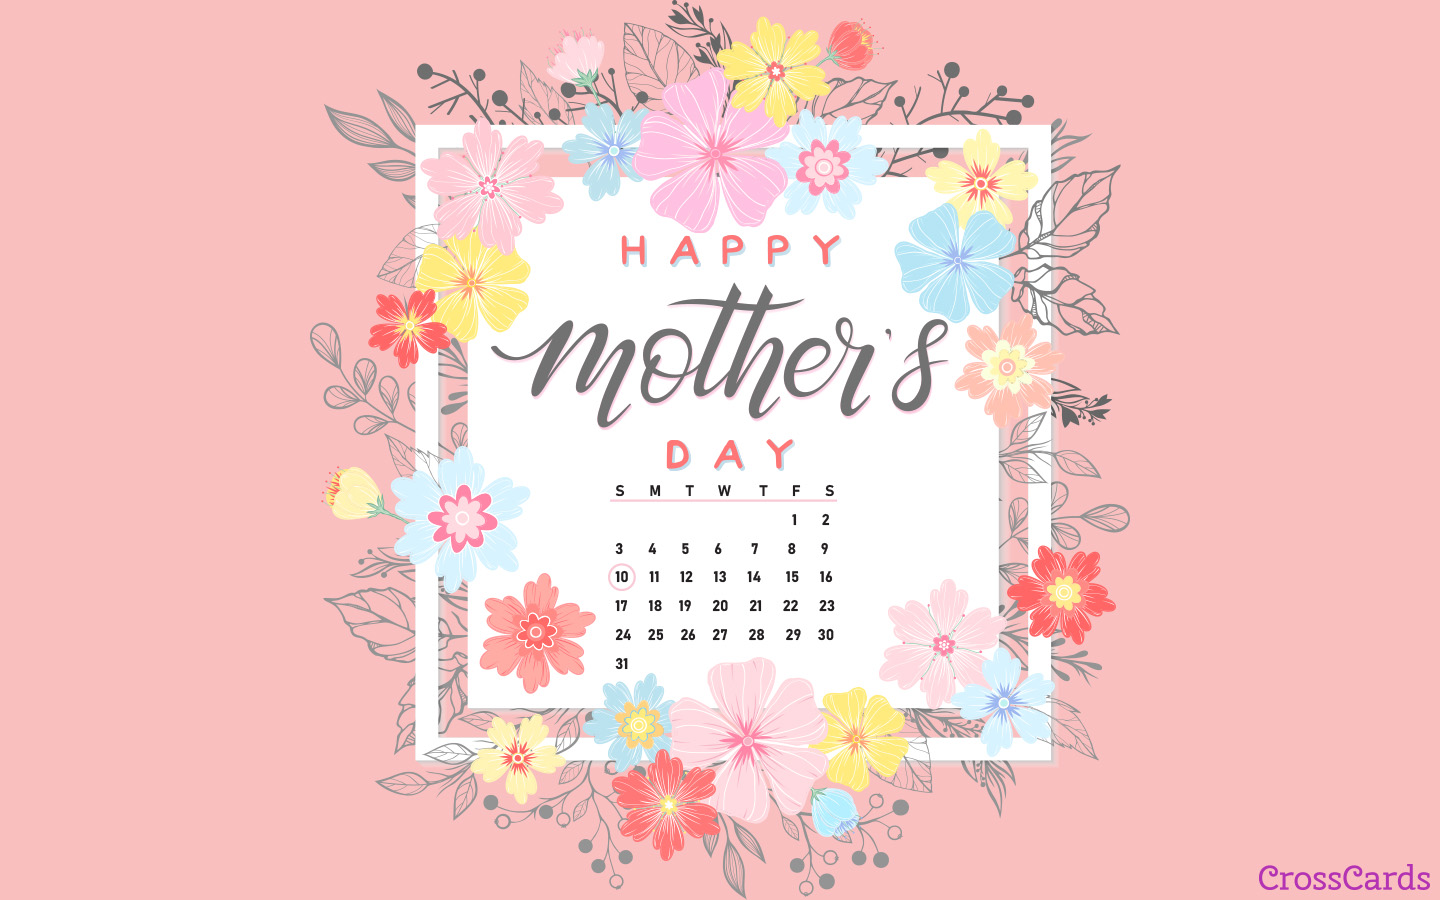 May 2020 - Mother's Day mobile phone wallpaper